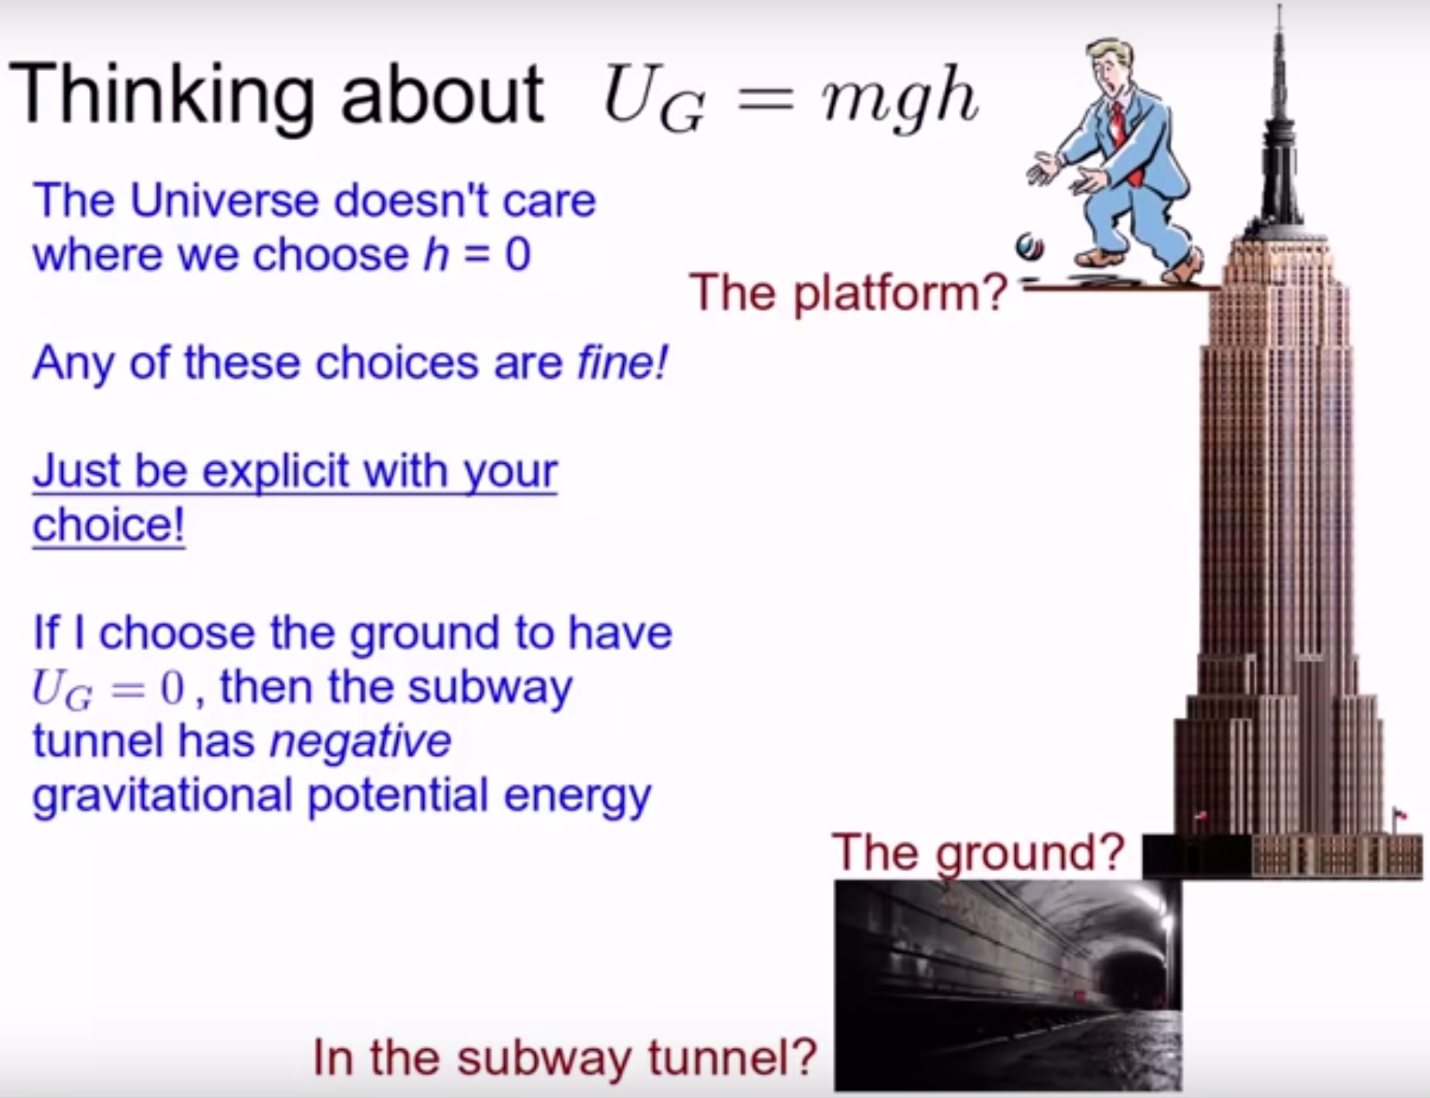 Where to put the zero of gravitational potential energy? The top of a building? The ground? In the subway below? The choice is arbitrary.